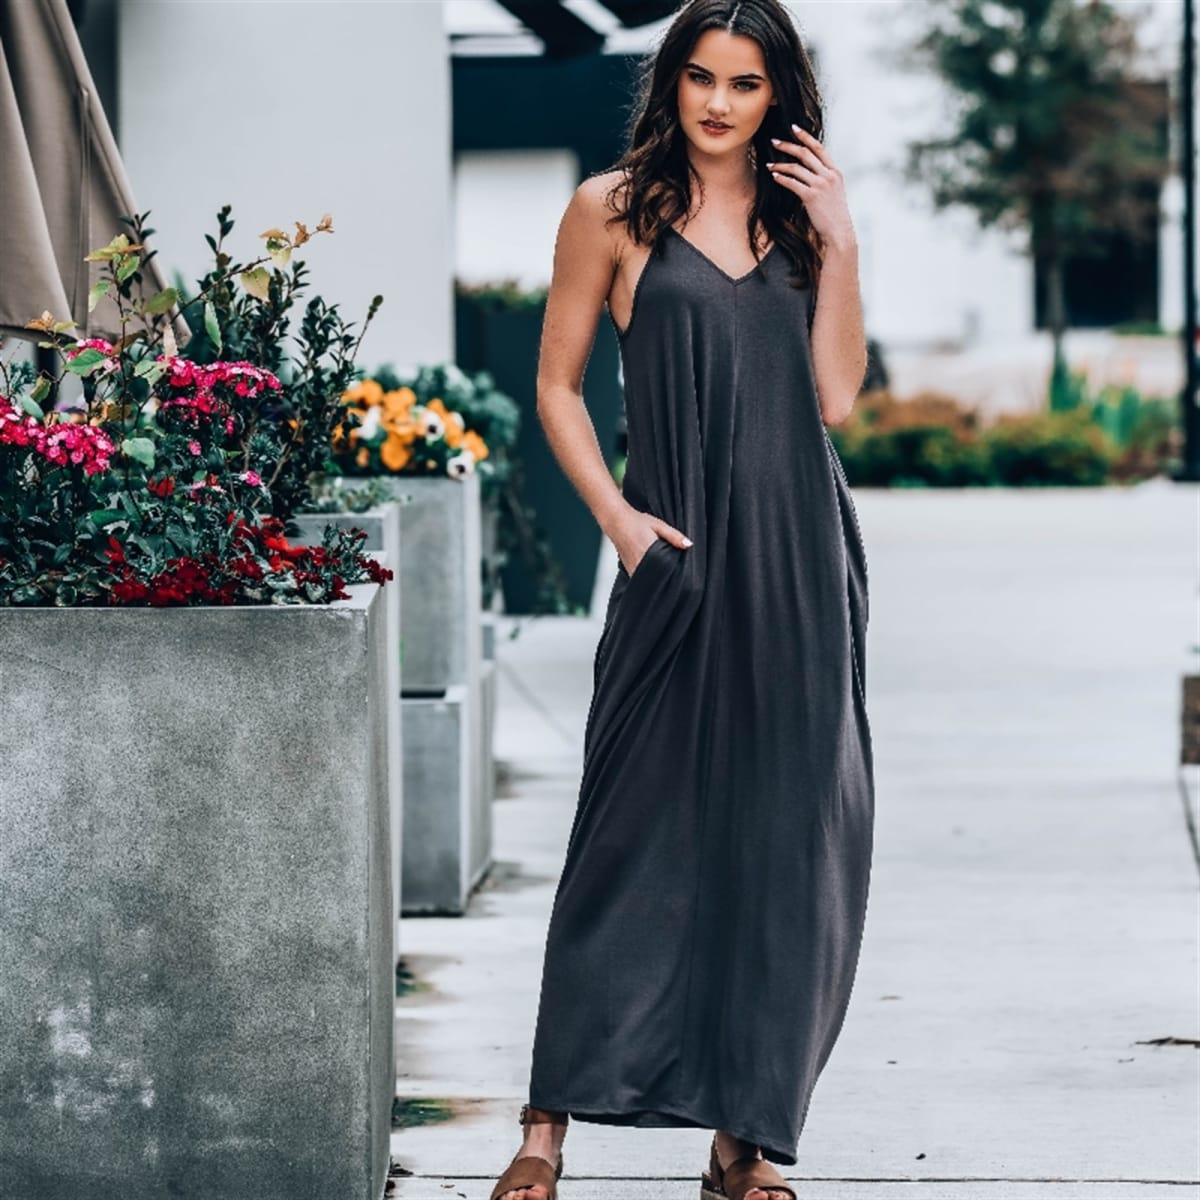 Summer dresses: Woman wearing a spaghetti strap maxi dress in black.